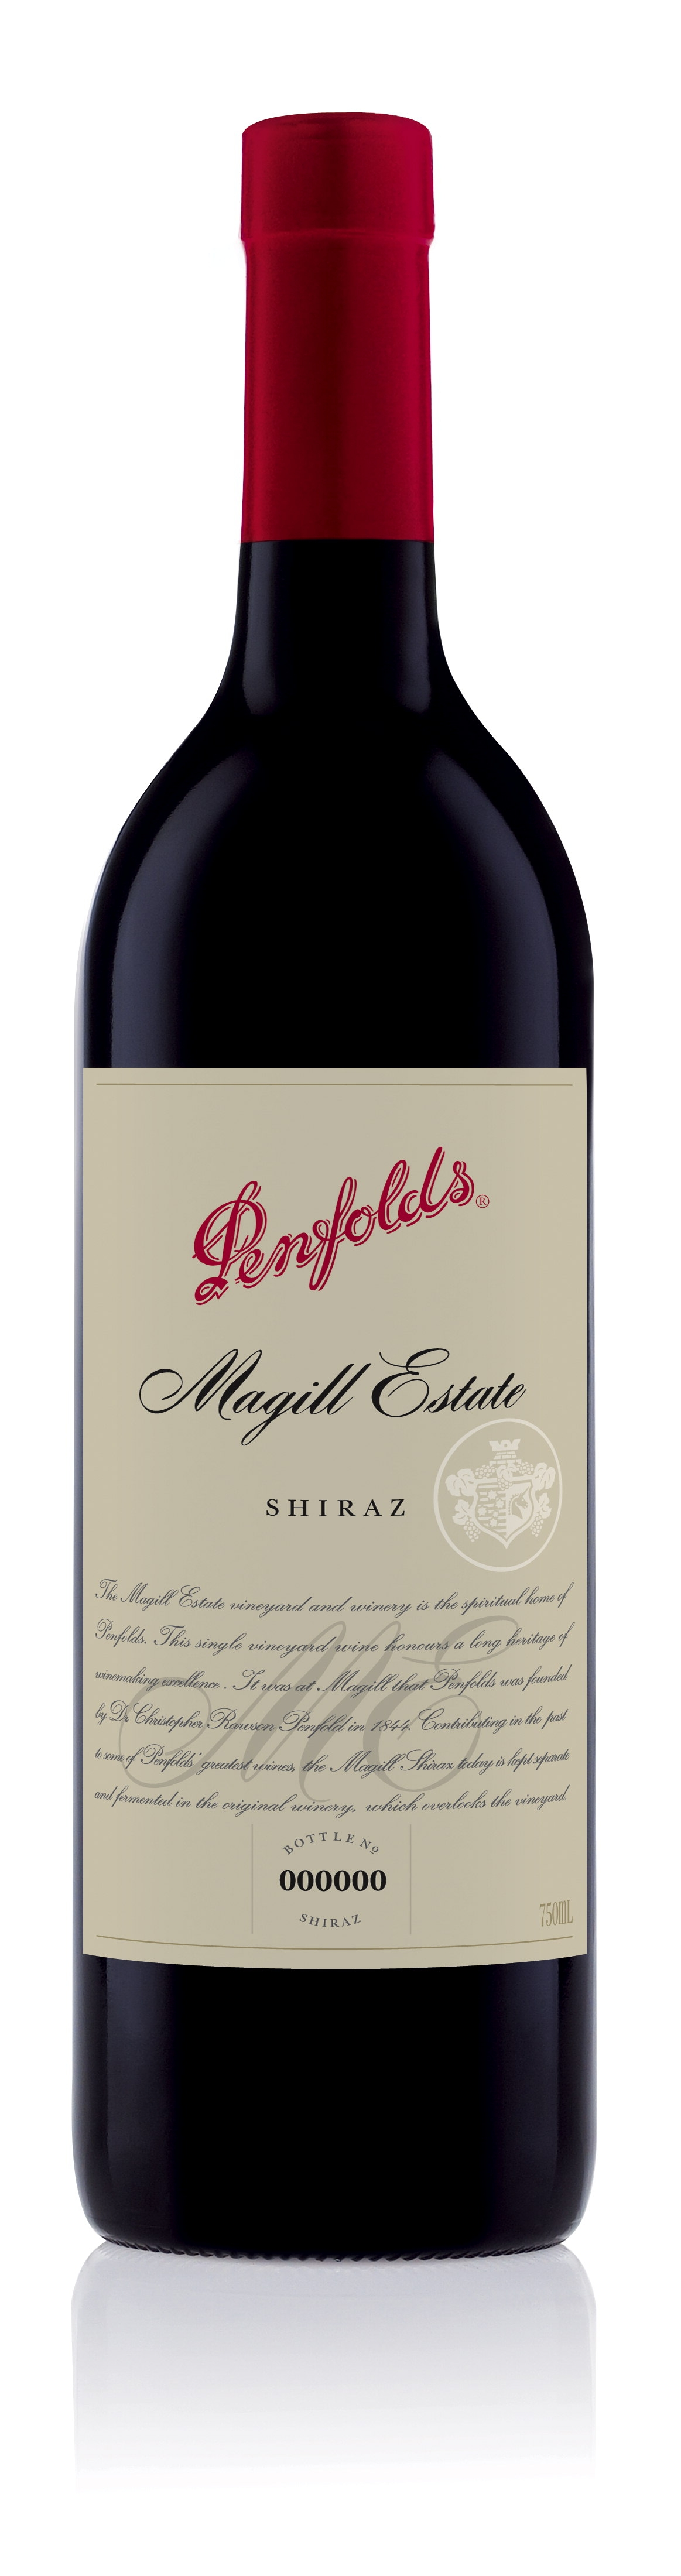 Penfolds Magill Estate Shiraz.JPG